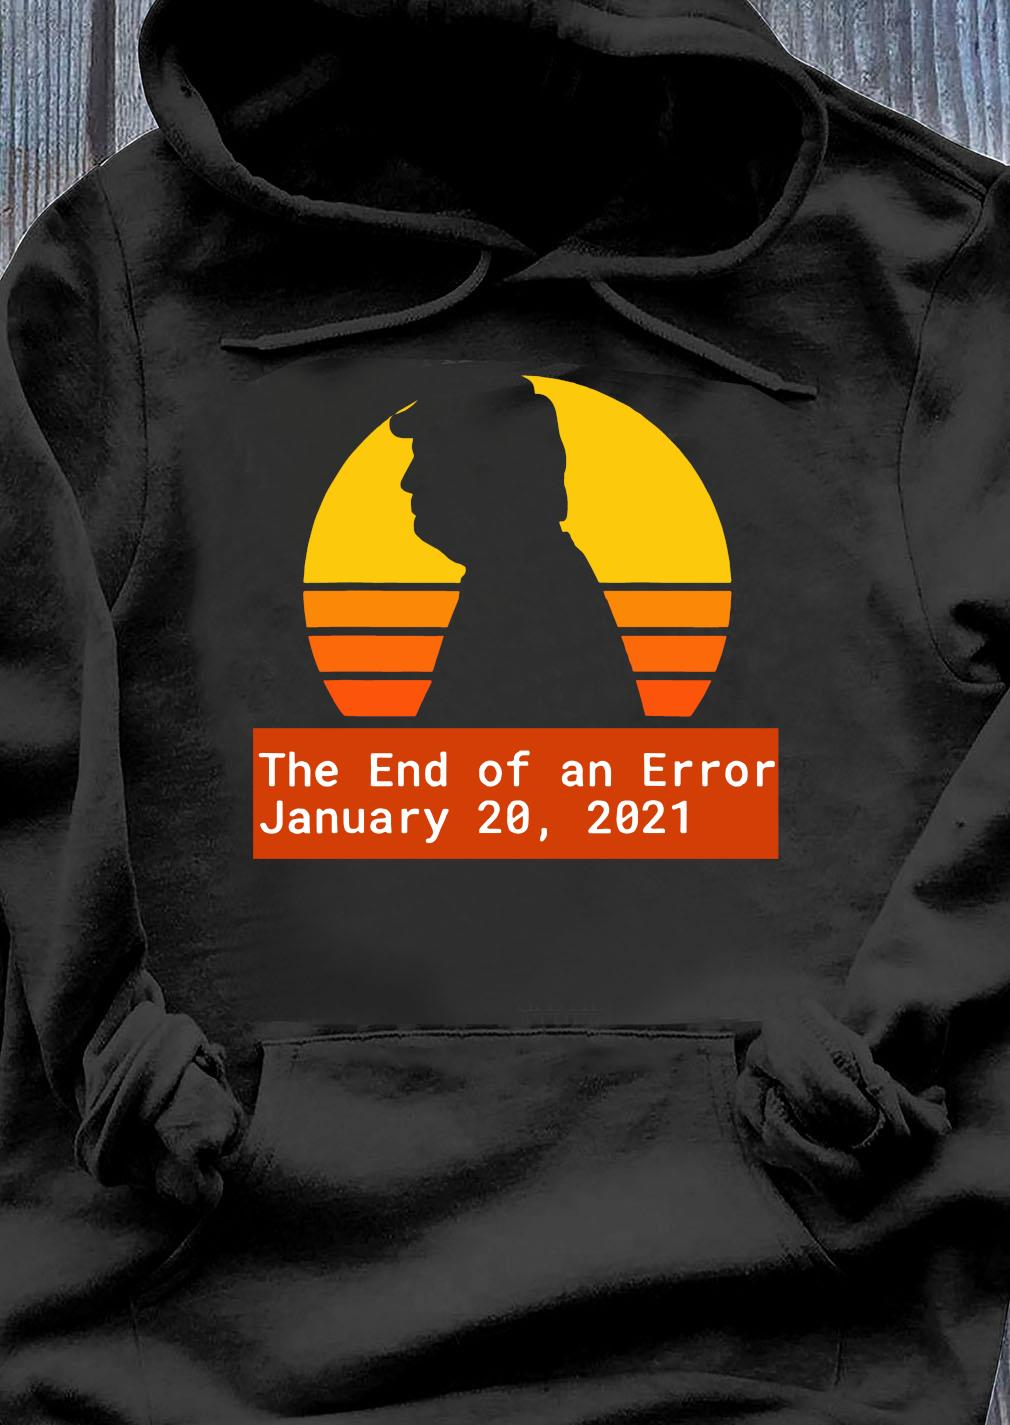 January 20 2021 The End of an Error Trump Biden Kamala Vintage Shirt Hoodie